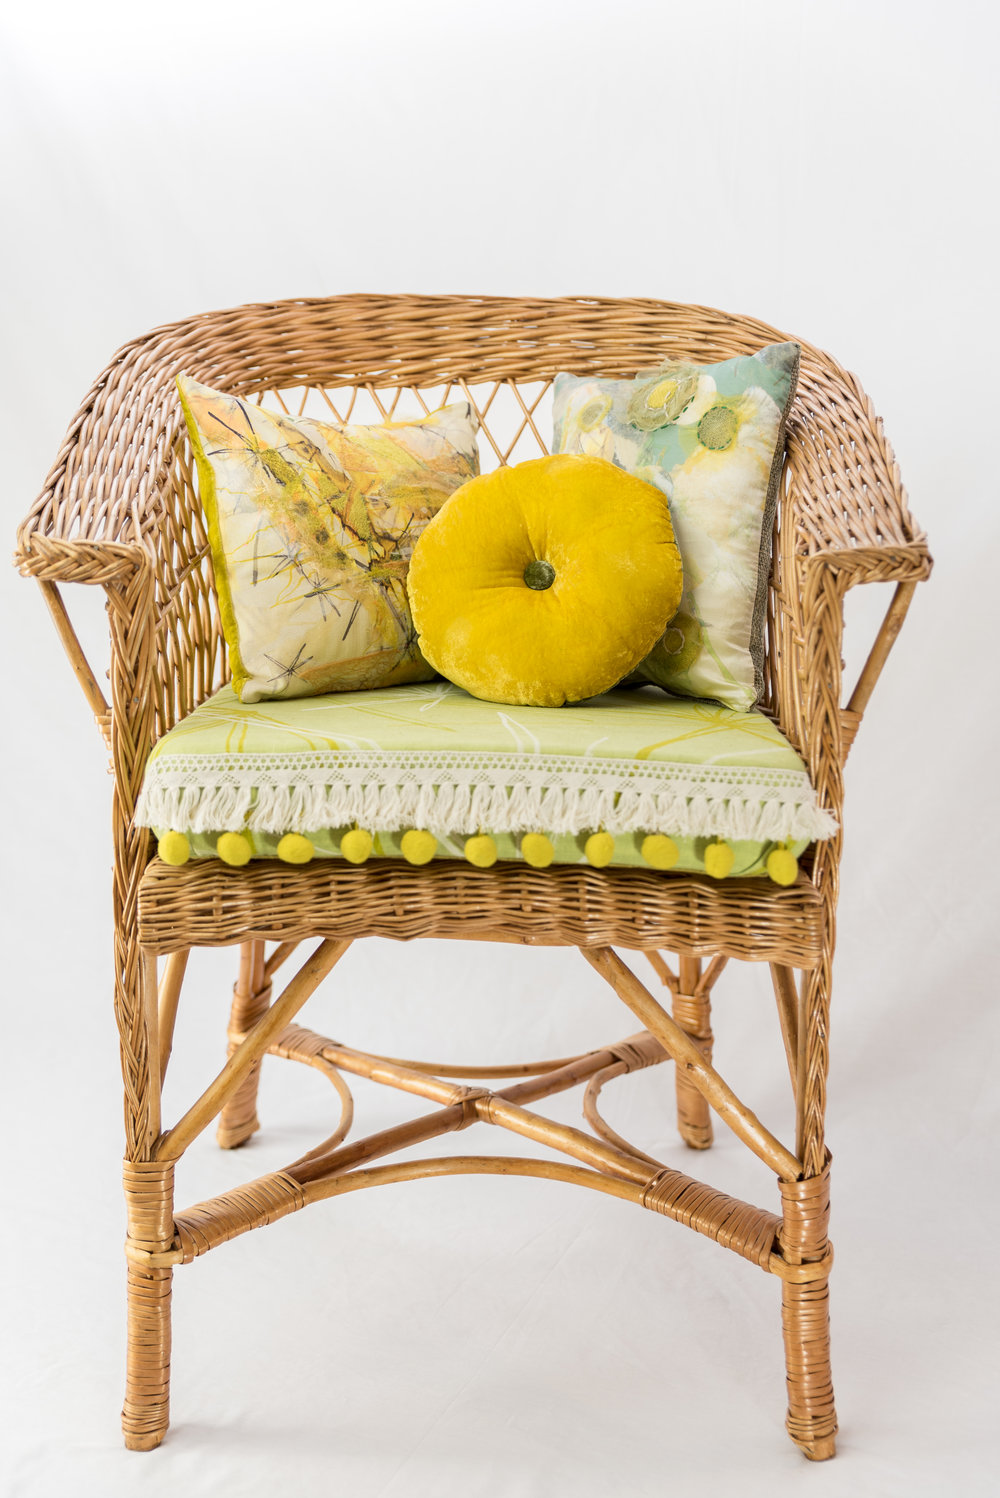 Exotic Wicker Chair